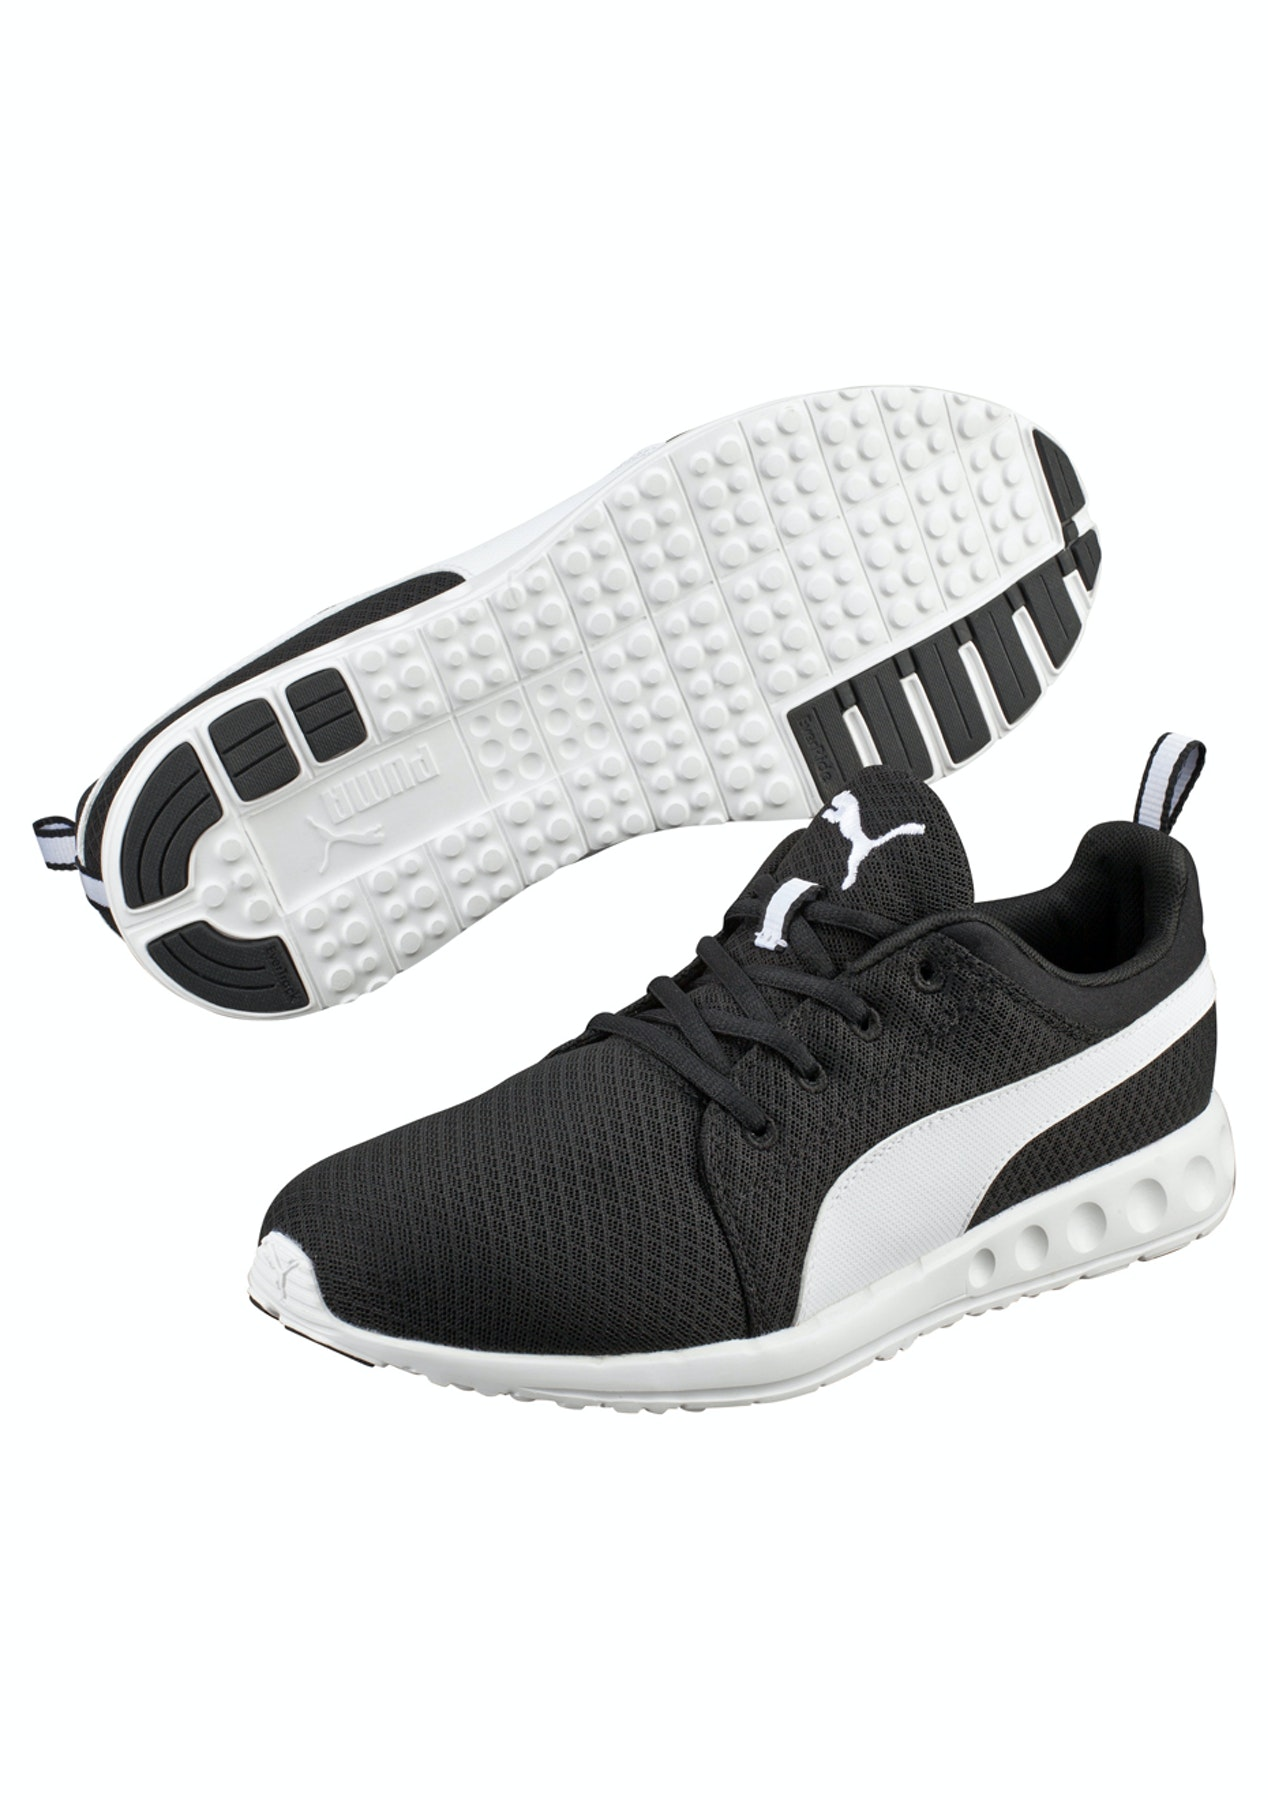 767e58c974dc Puma Mens - Carson Mesh - Black - White - Mens Outlet Sale from  5 - Onceit